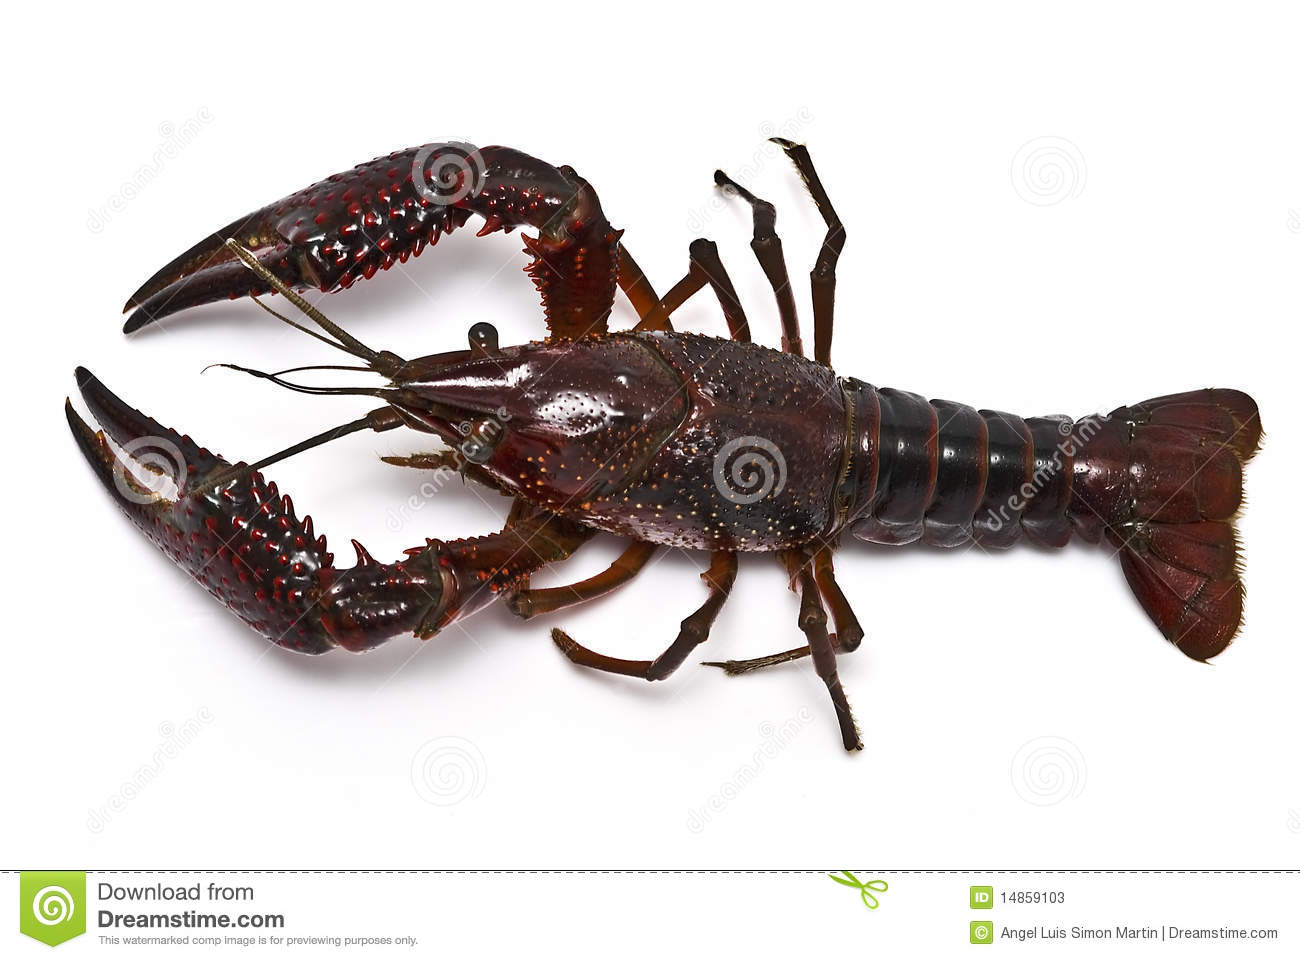 Aerial view of a crayfish.